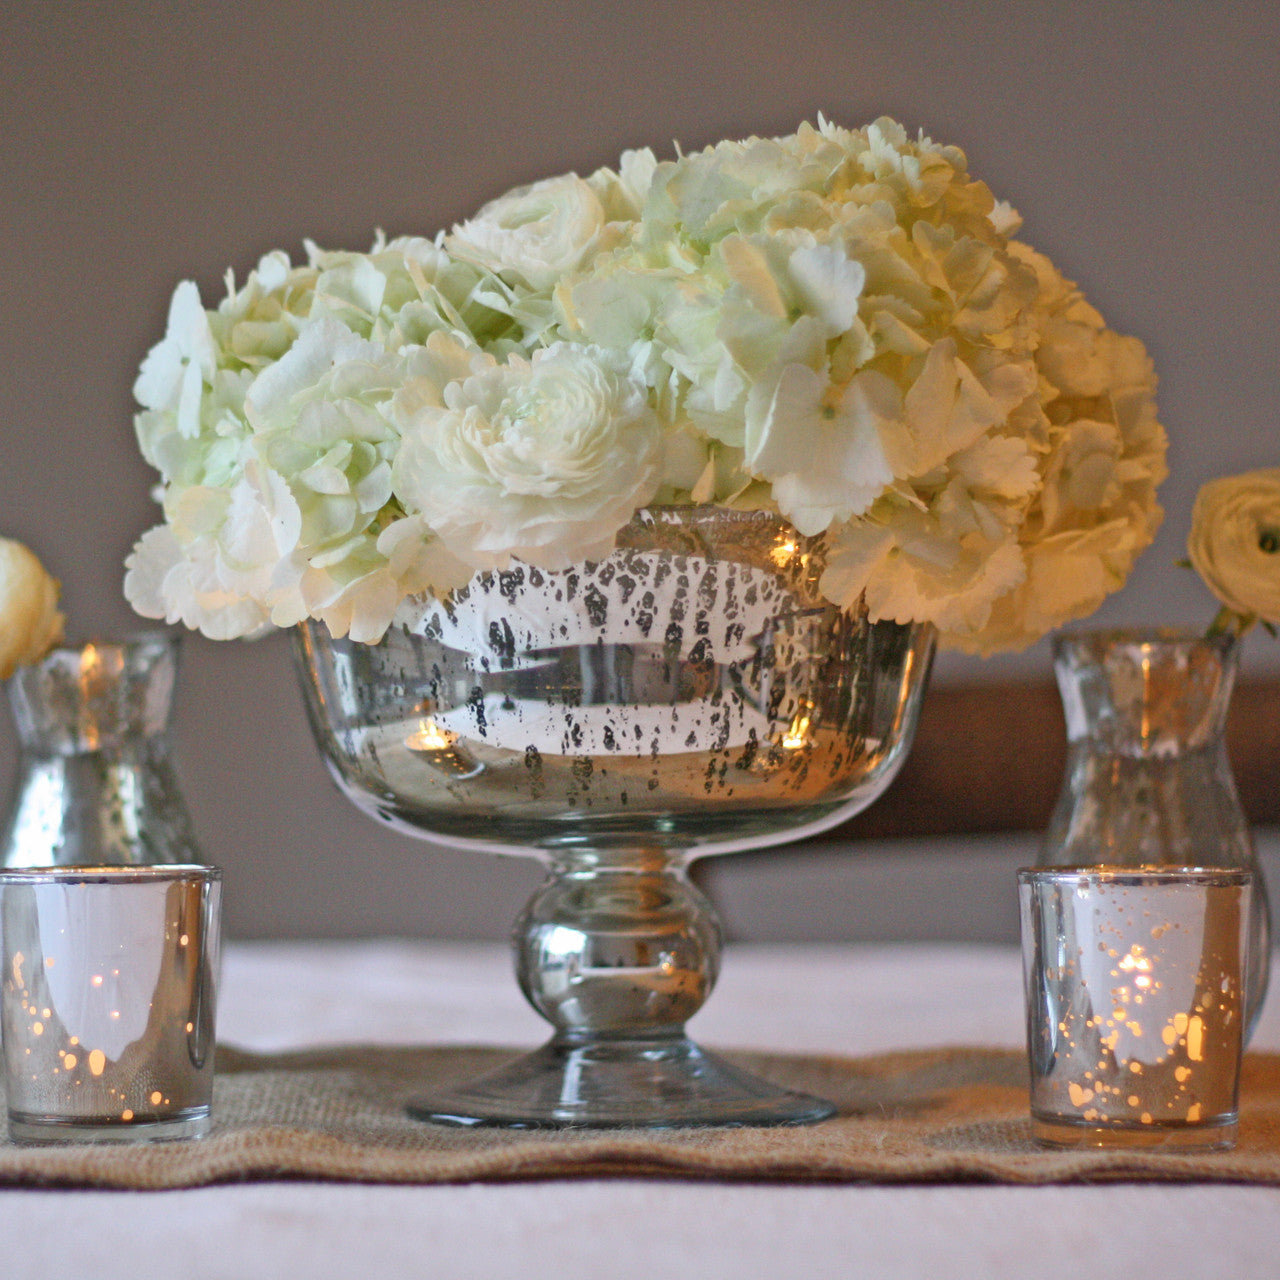 Antique Silver Footed Bowl Wedding Centrepiece The